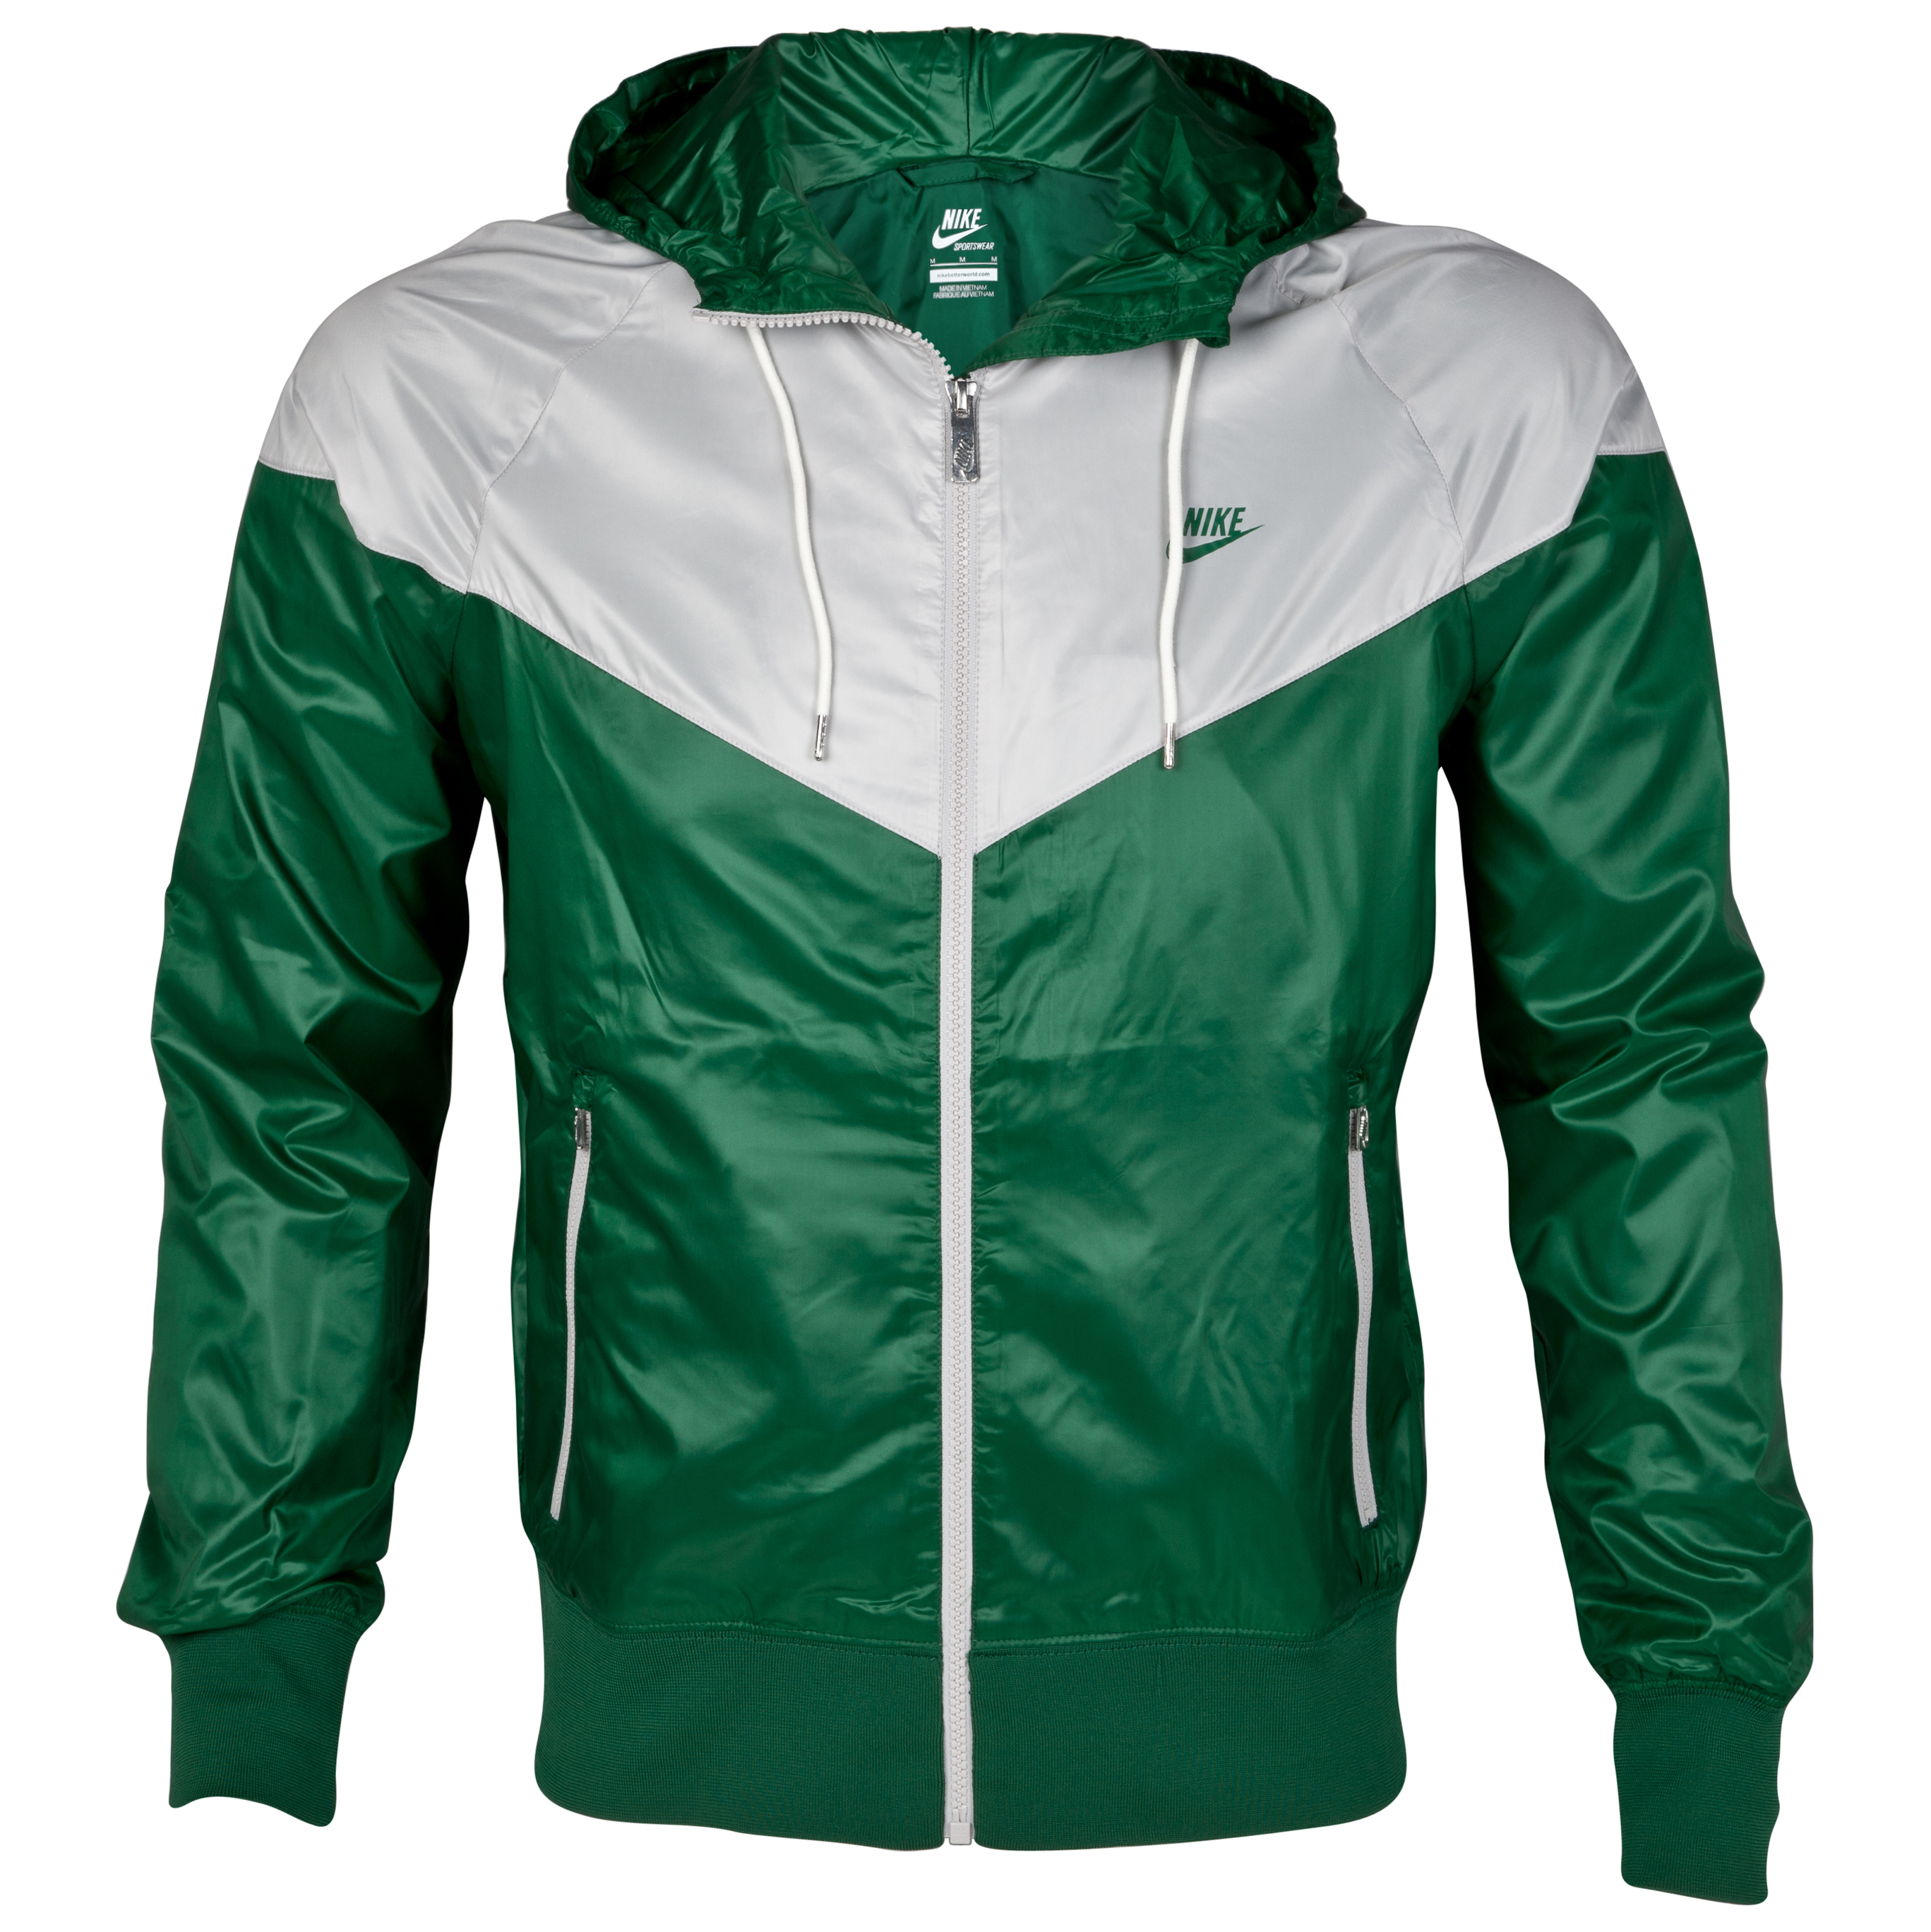 Nike Windrunner Jacket - Gorge Green/Granite